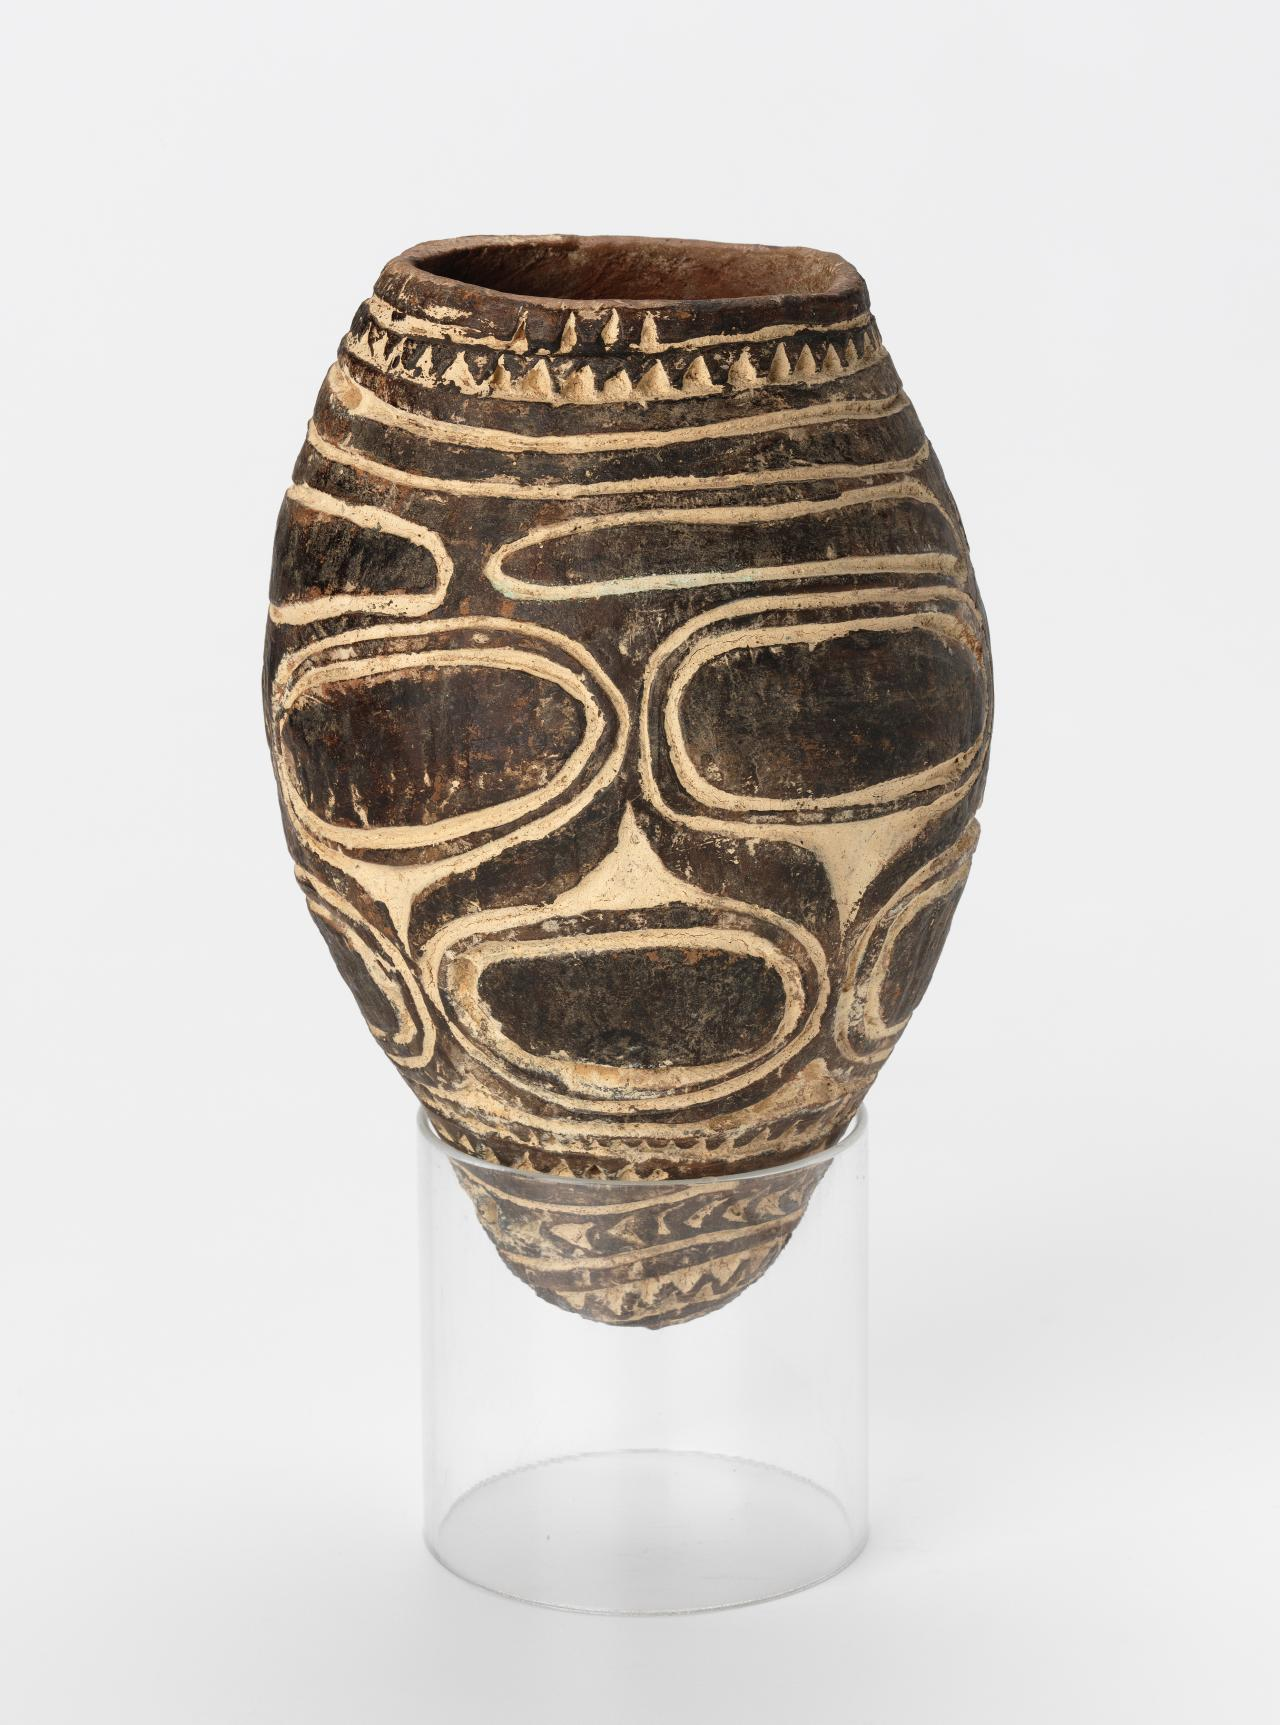 Awomar, Ceremonial clay food bowl